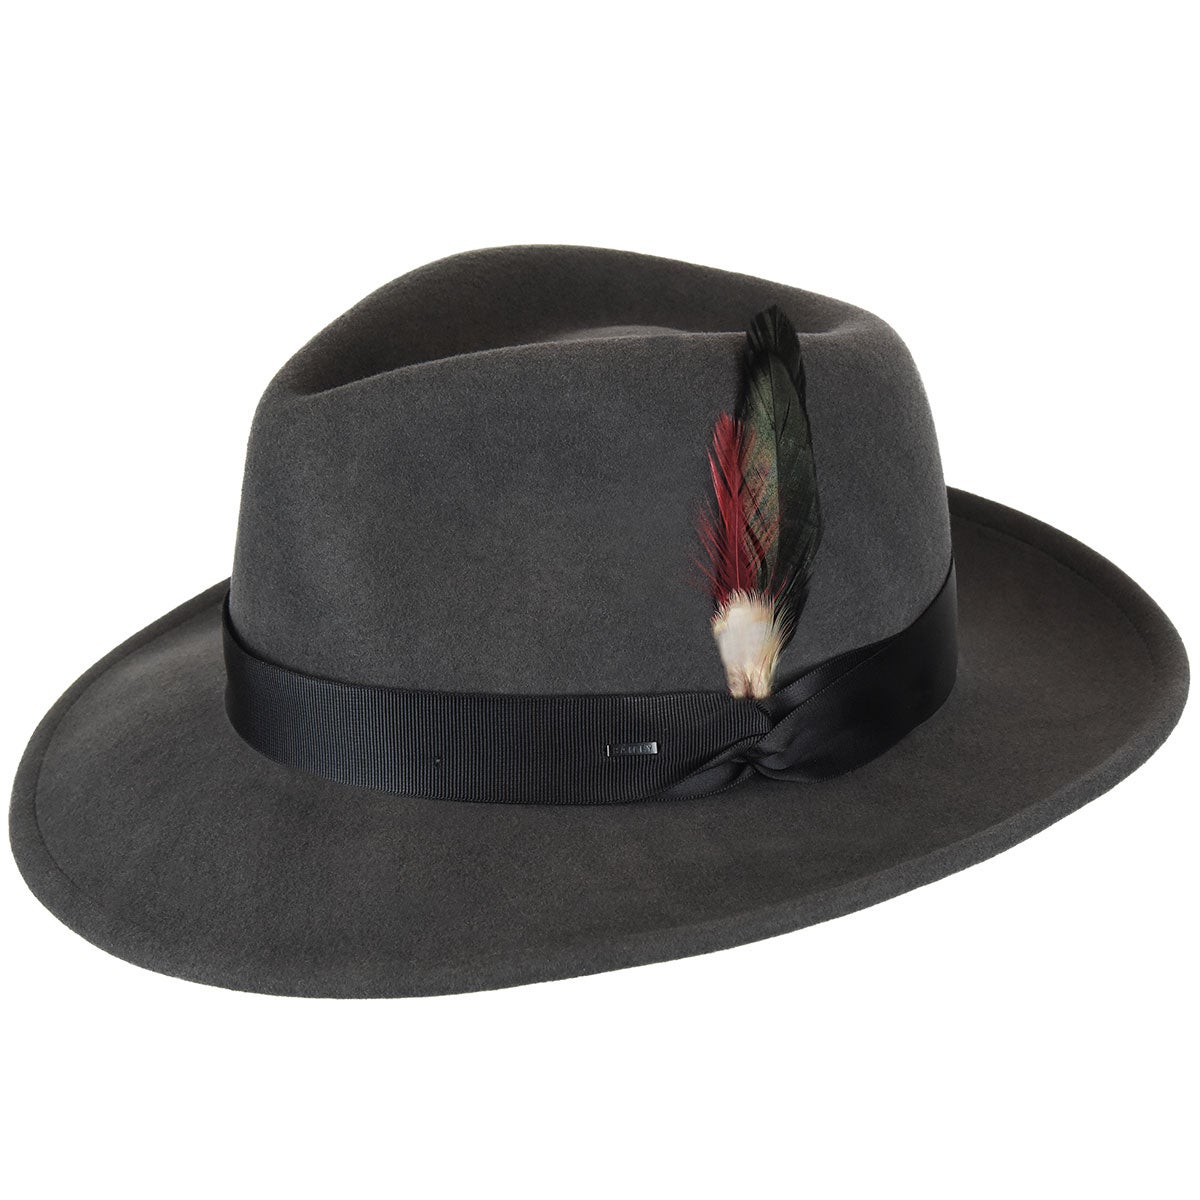 1940s Mens Hats | Fedora, Homburg, Pork Pie Hats Metrick LiteFelt Fedora $90.00 AT vintagedancer.com